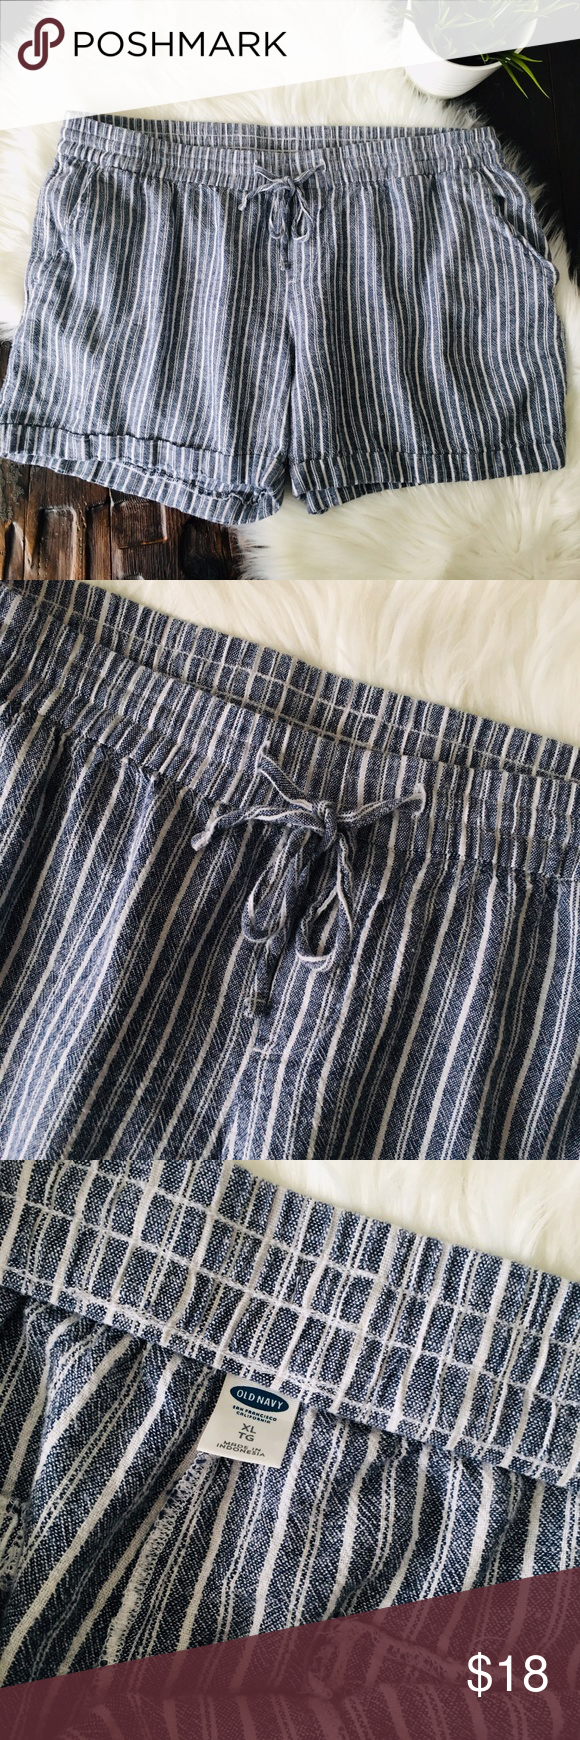 7f4726dd5af OLD NAVY Women s XL Linen Blend Striped Shorts EUC Excellent used condition  and from a smoke-free environment Old Navy women s size XL Elastic waist  with ...